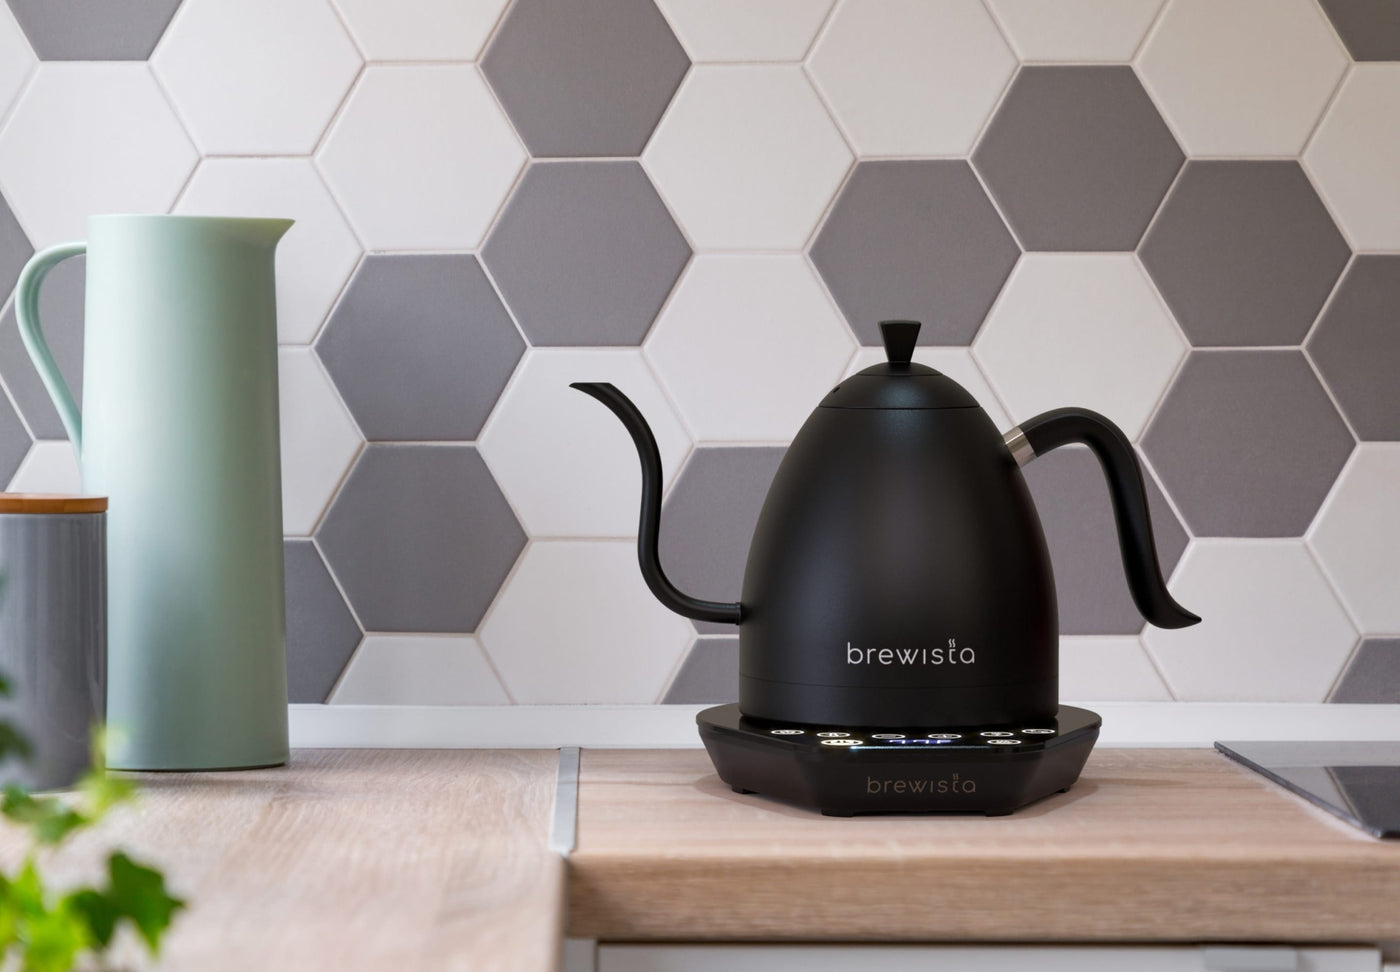 Brewista Artisan kettle sitting on a kitchen counter. Image created using 3D and AR (augmented reality)